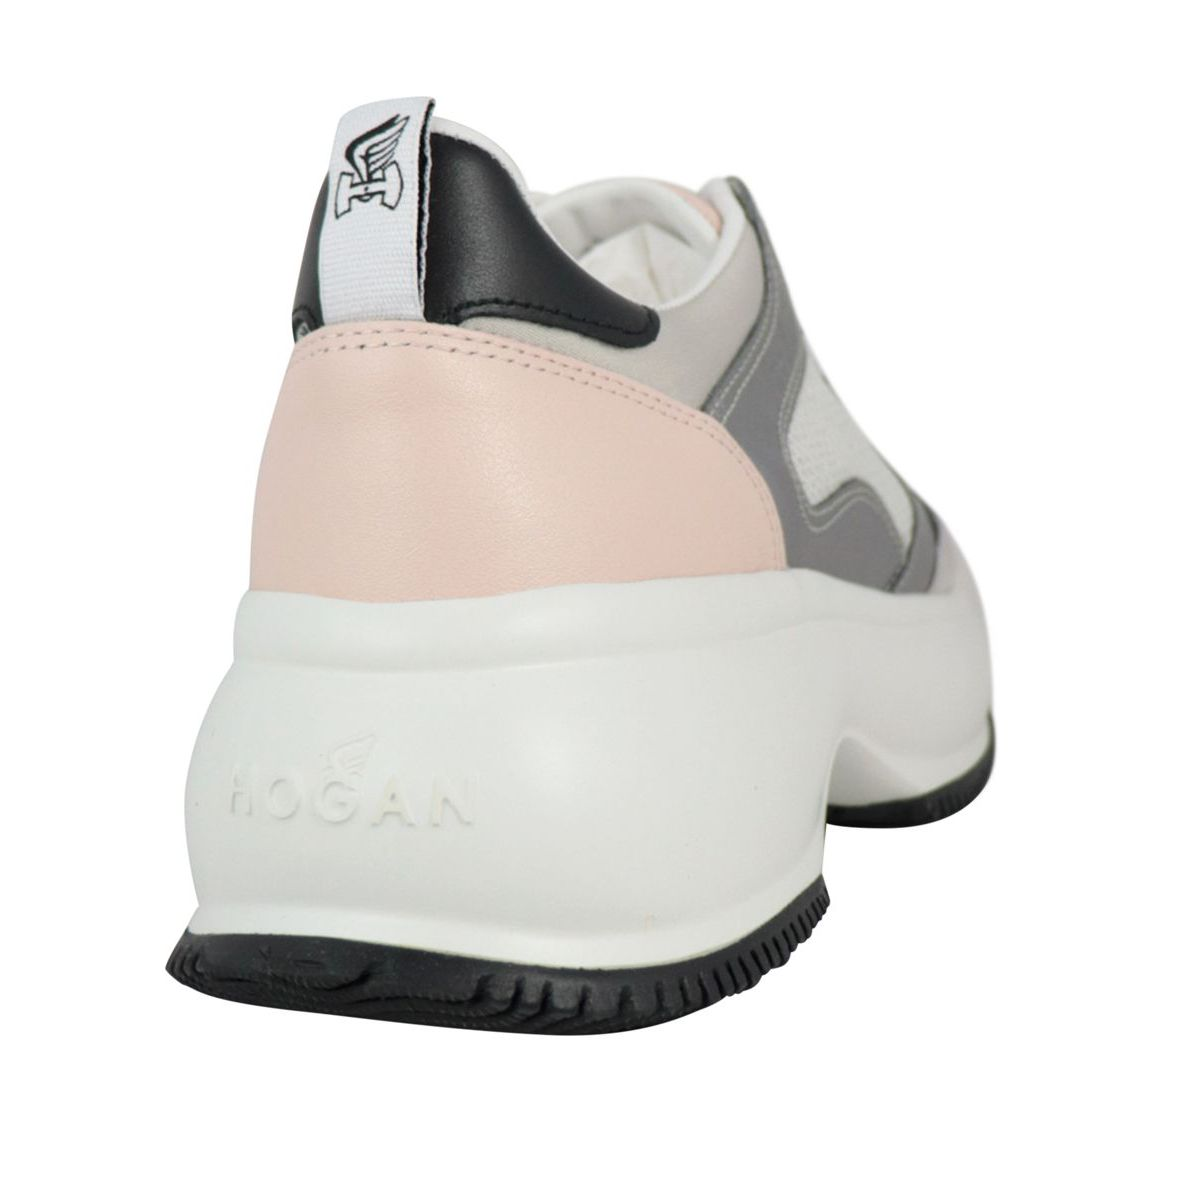 Maxi Active sneakers in leather and suede White / silver Hogan